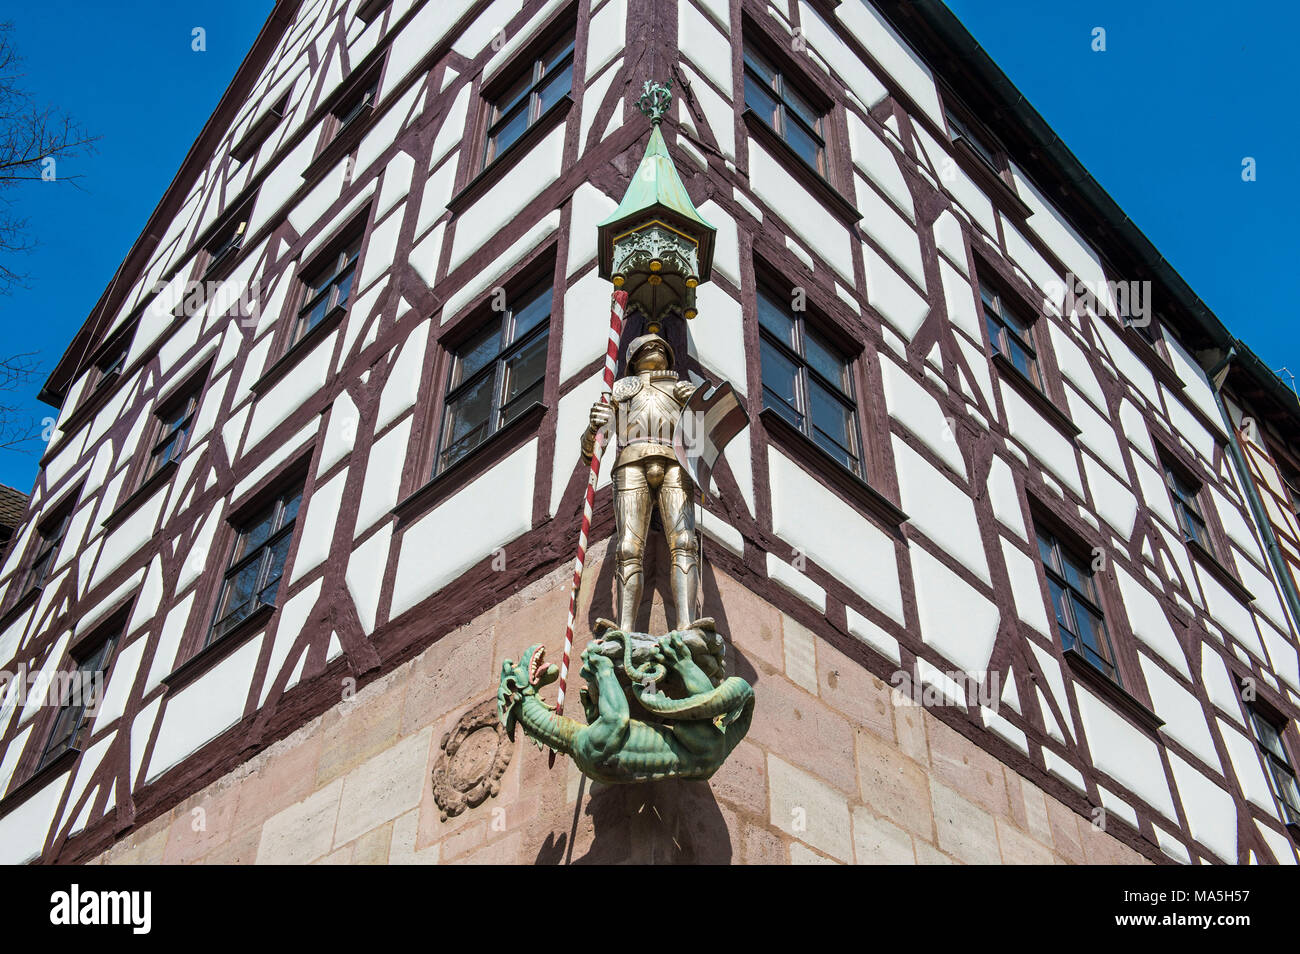 Golden statue on a half timbered house in the medieval town center of Nuremberg, Bavaria, Germany Stock Photo